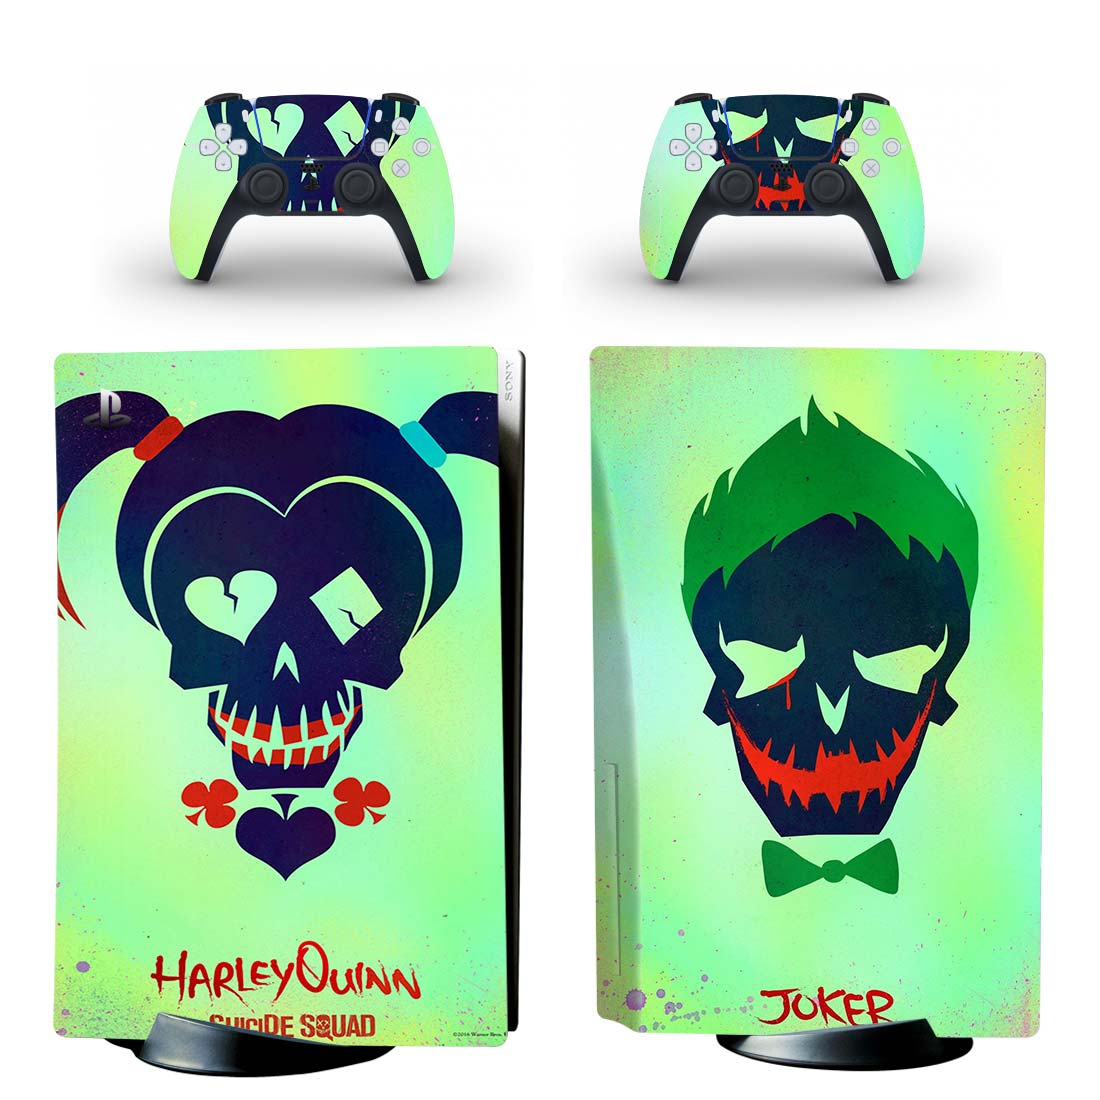 Harley Quinn And Joker Skin Sticker Decal For PlayStation 5